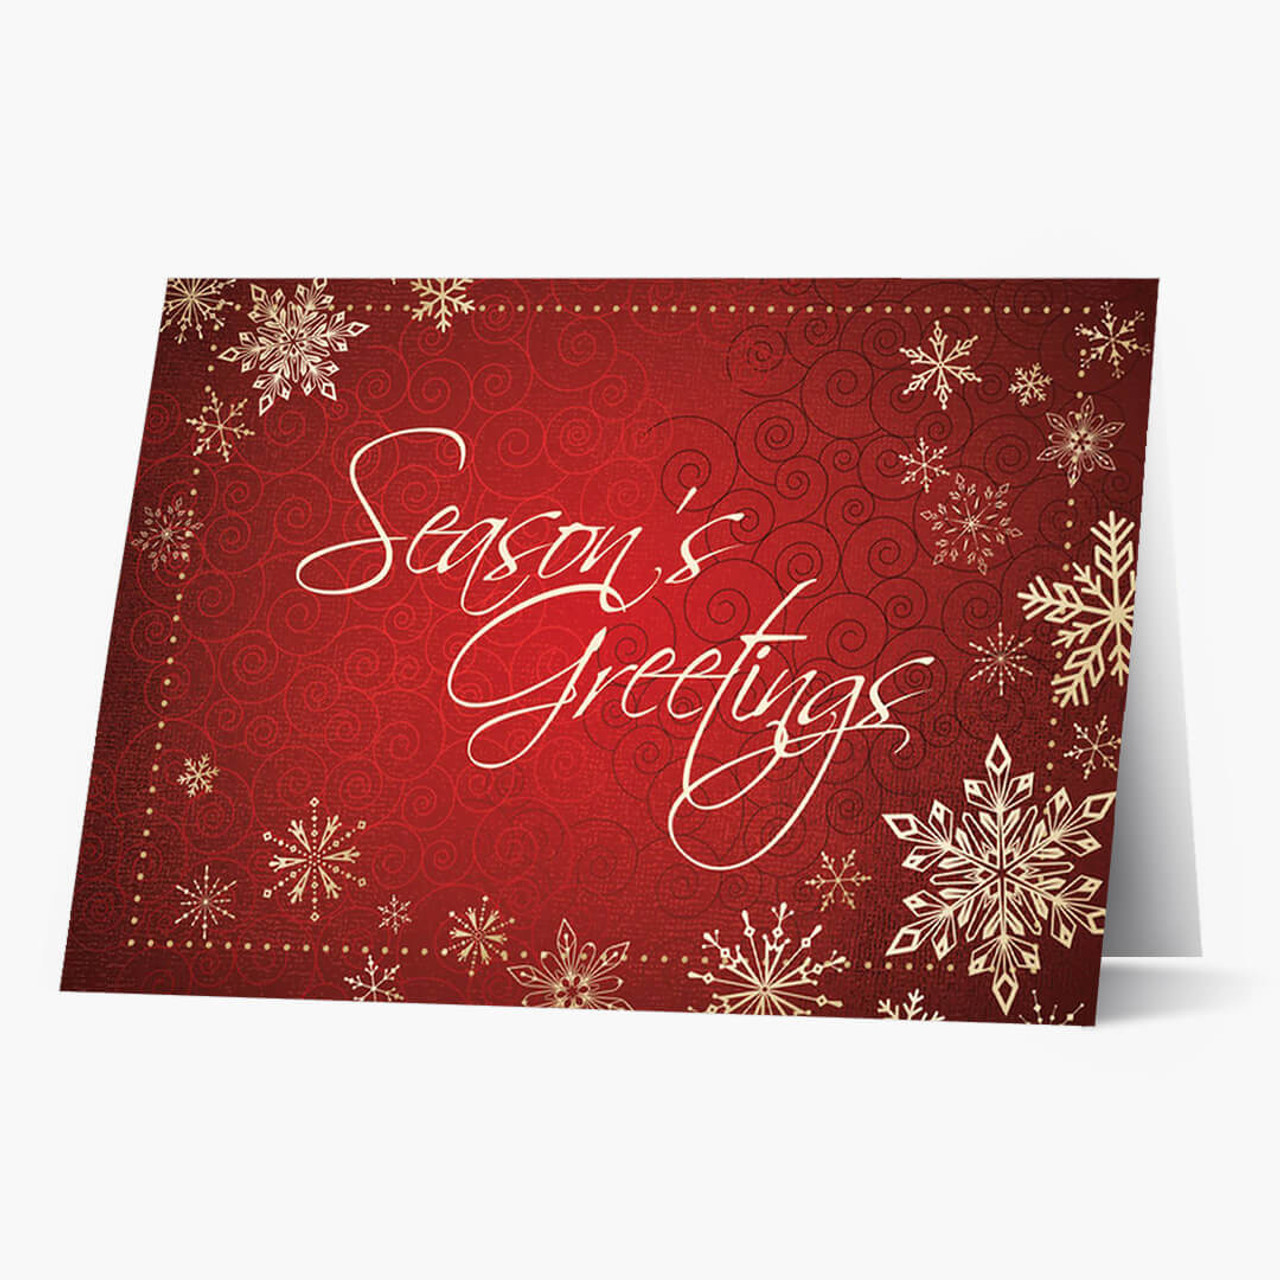 Season's Greetings Snowflakes Christmas Card